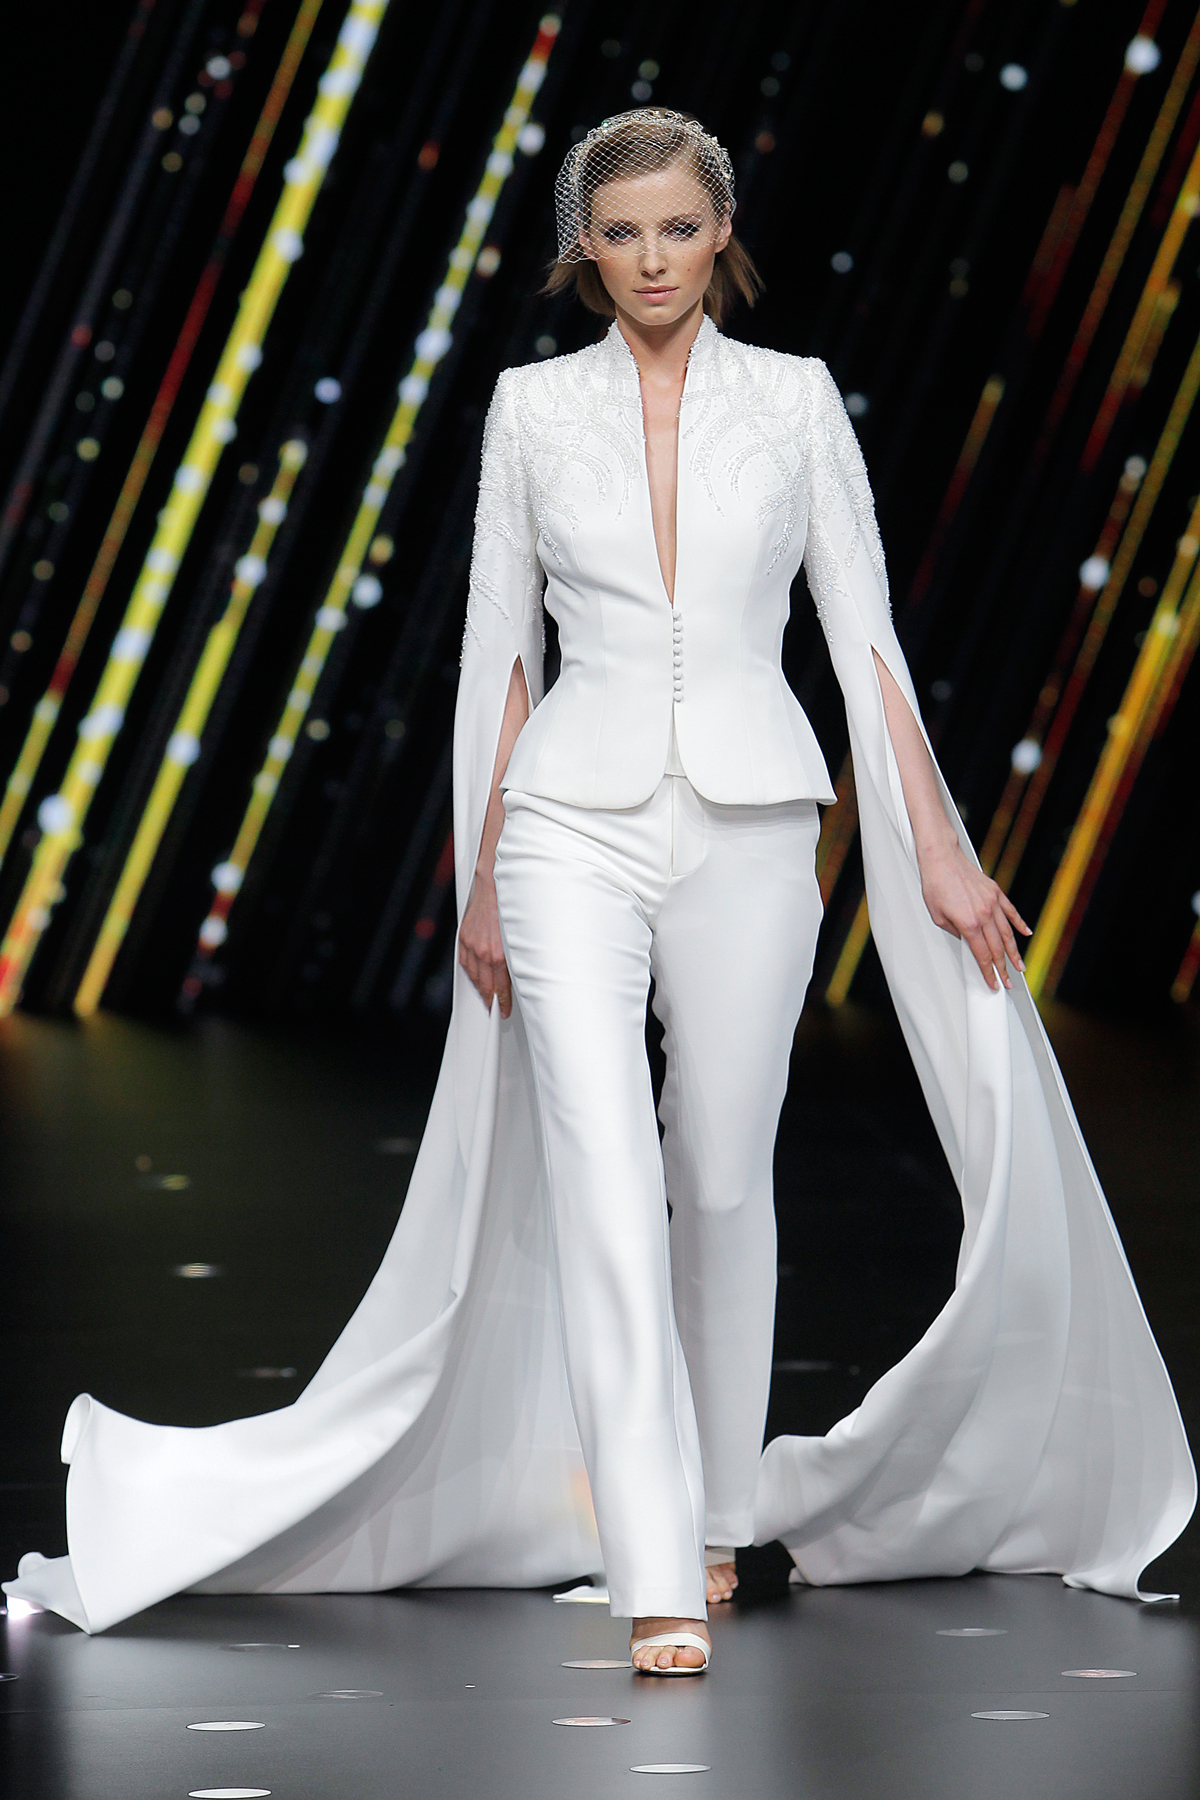 pronovias pantsuit with beaded jacket and statement bell sleeves wedding dress spring 2020